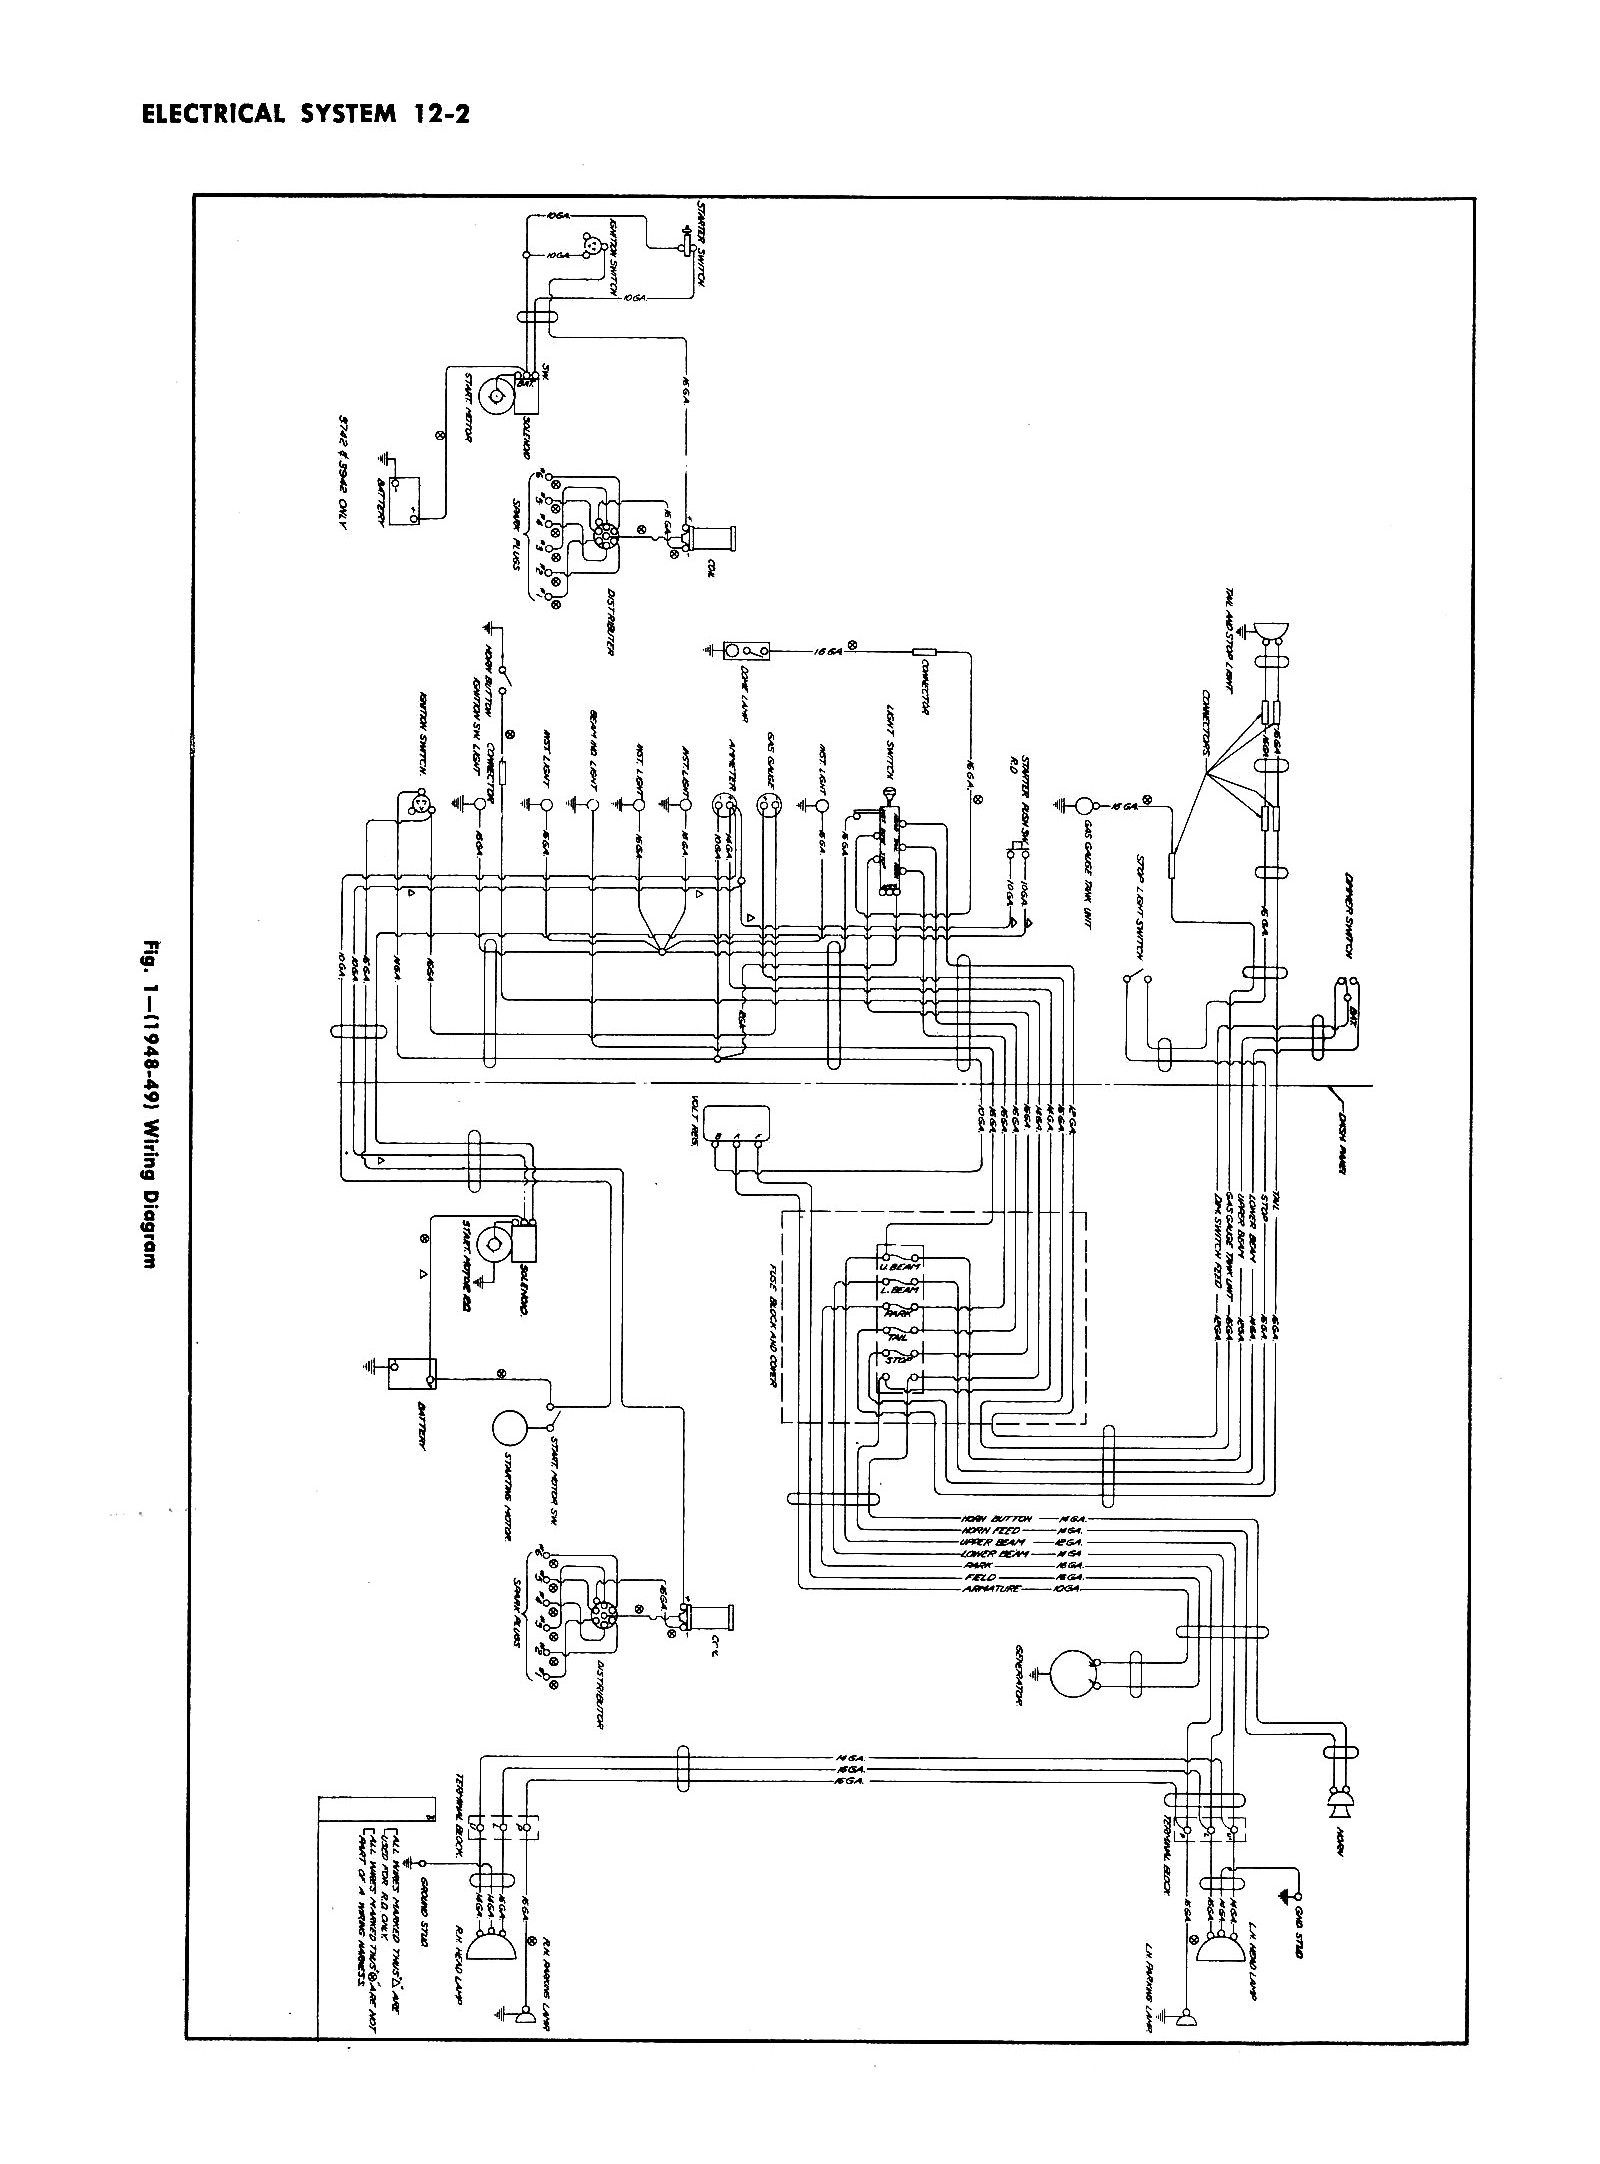 48car chevy wiring diagrams 1996 chevy truck wiring diagram at edmiracle.co